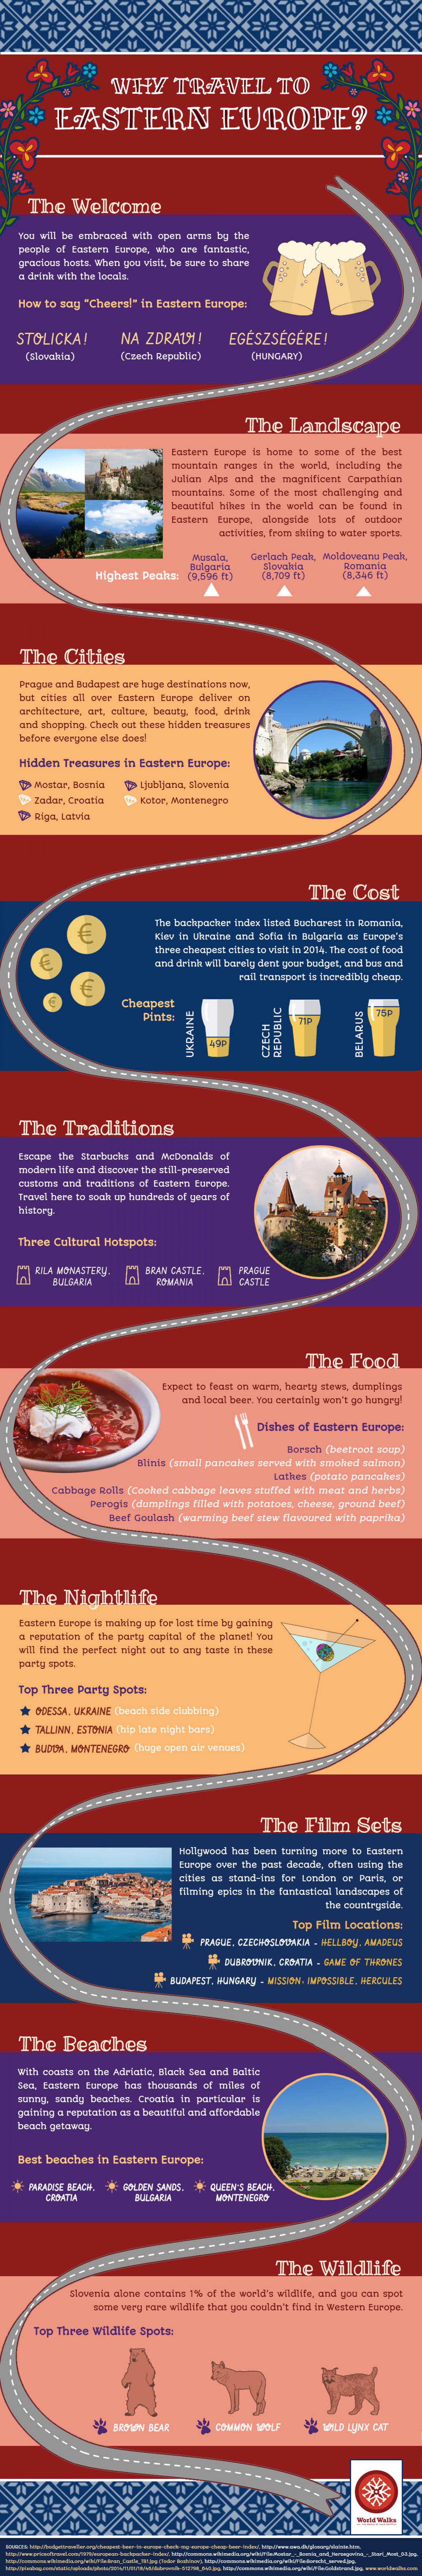 Why Travel to Eastern Europe? Infographic